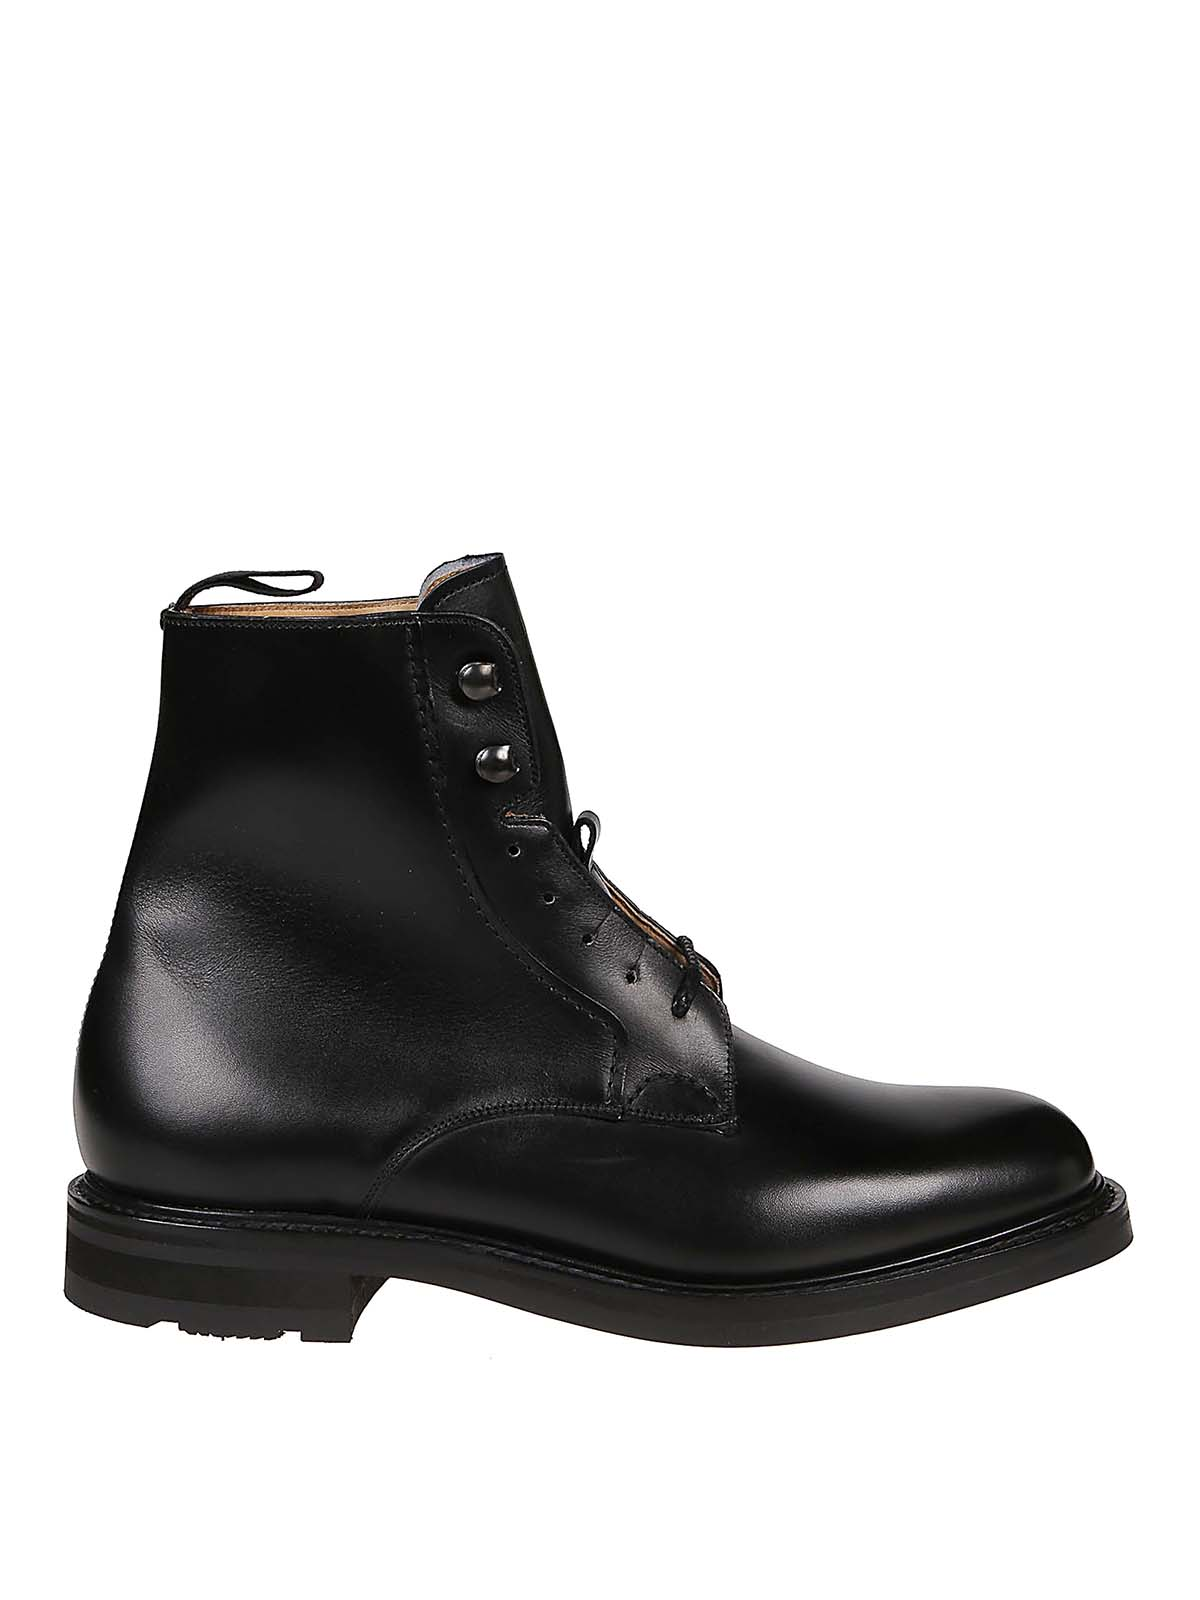 Wootton black ankle boots - ankle boots